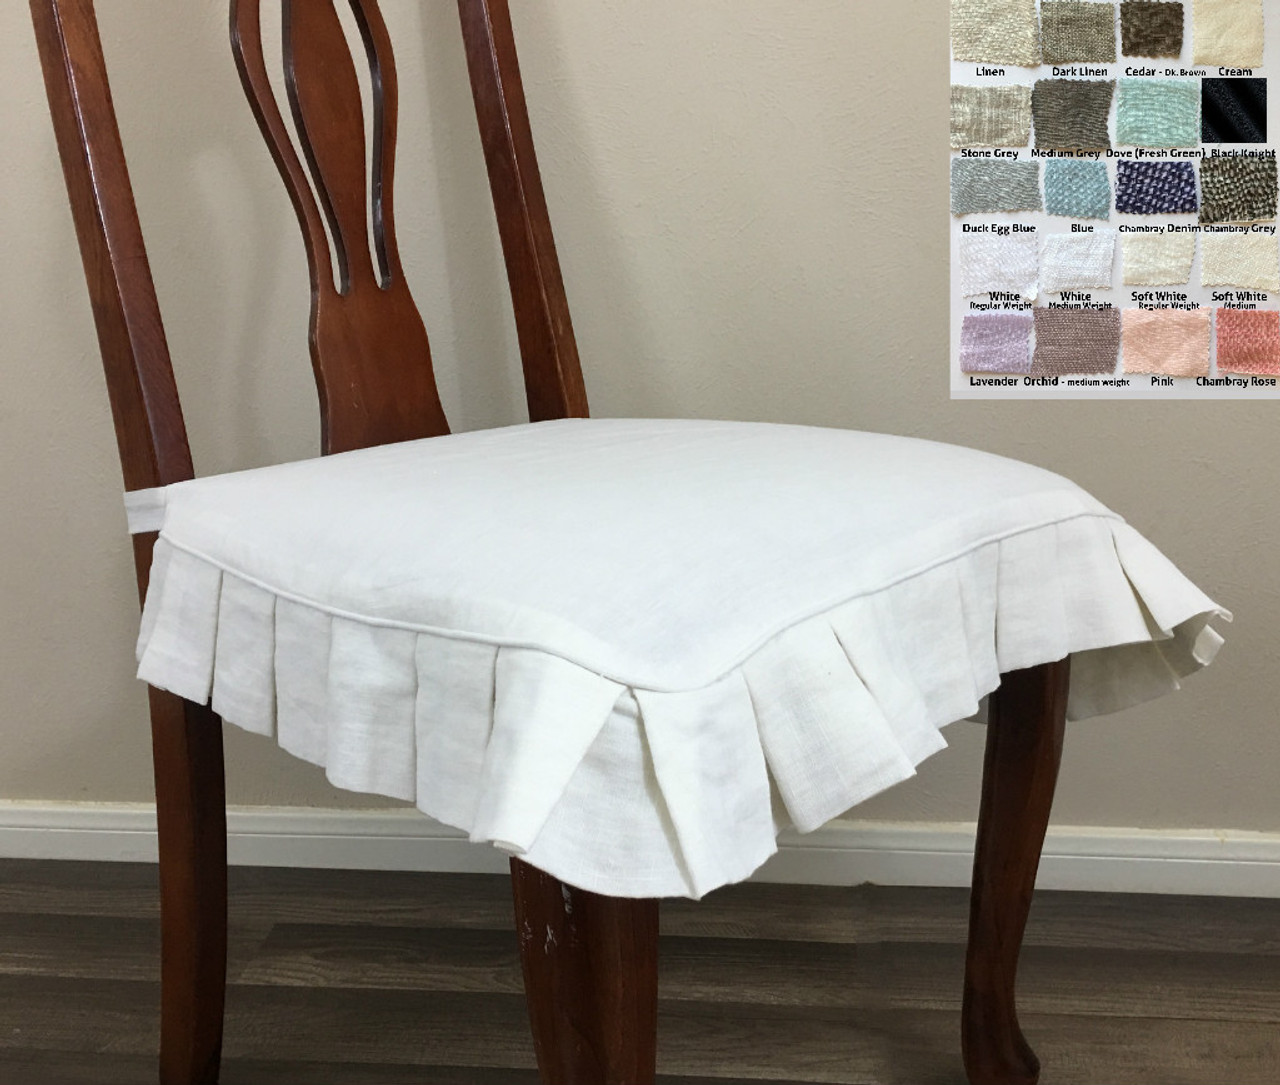 chair covers and linens high amazon linen seat cover with pleated ruffles  multiple colors